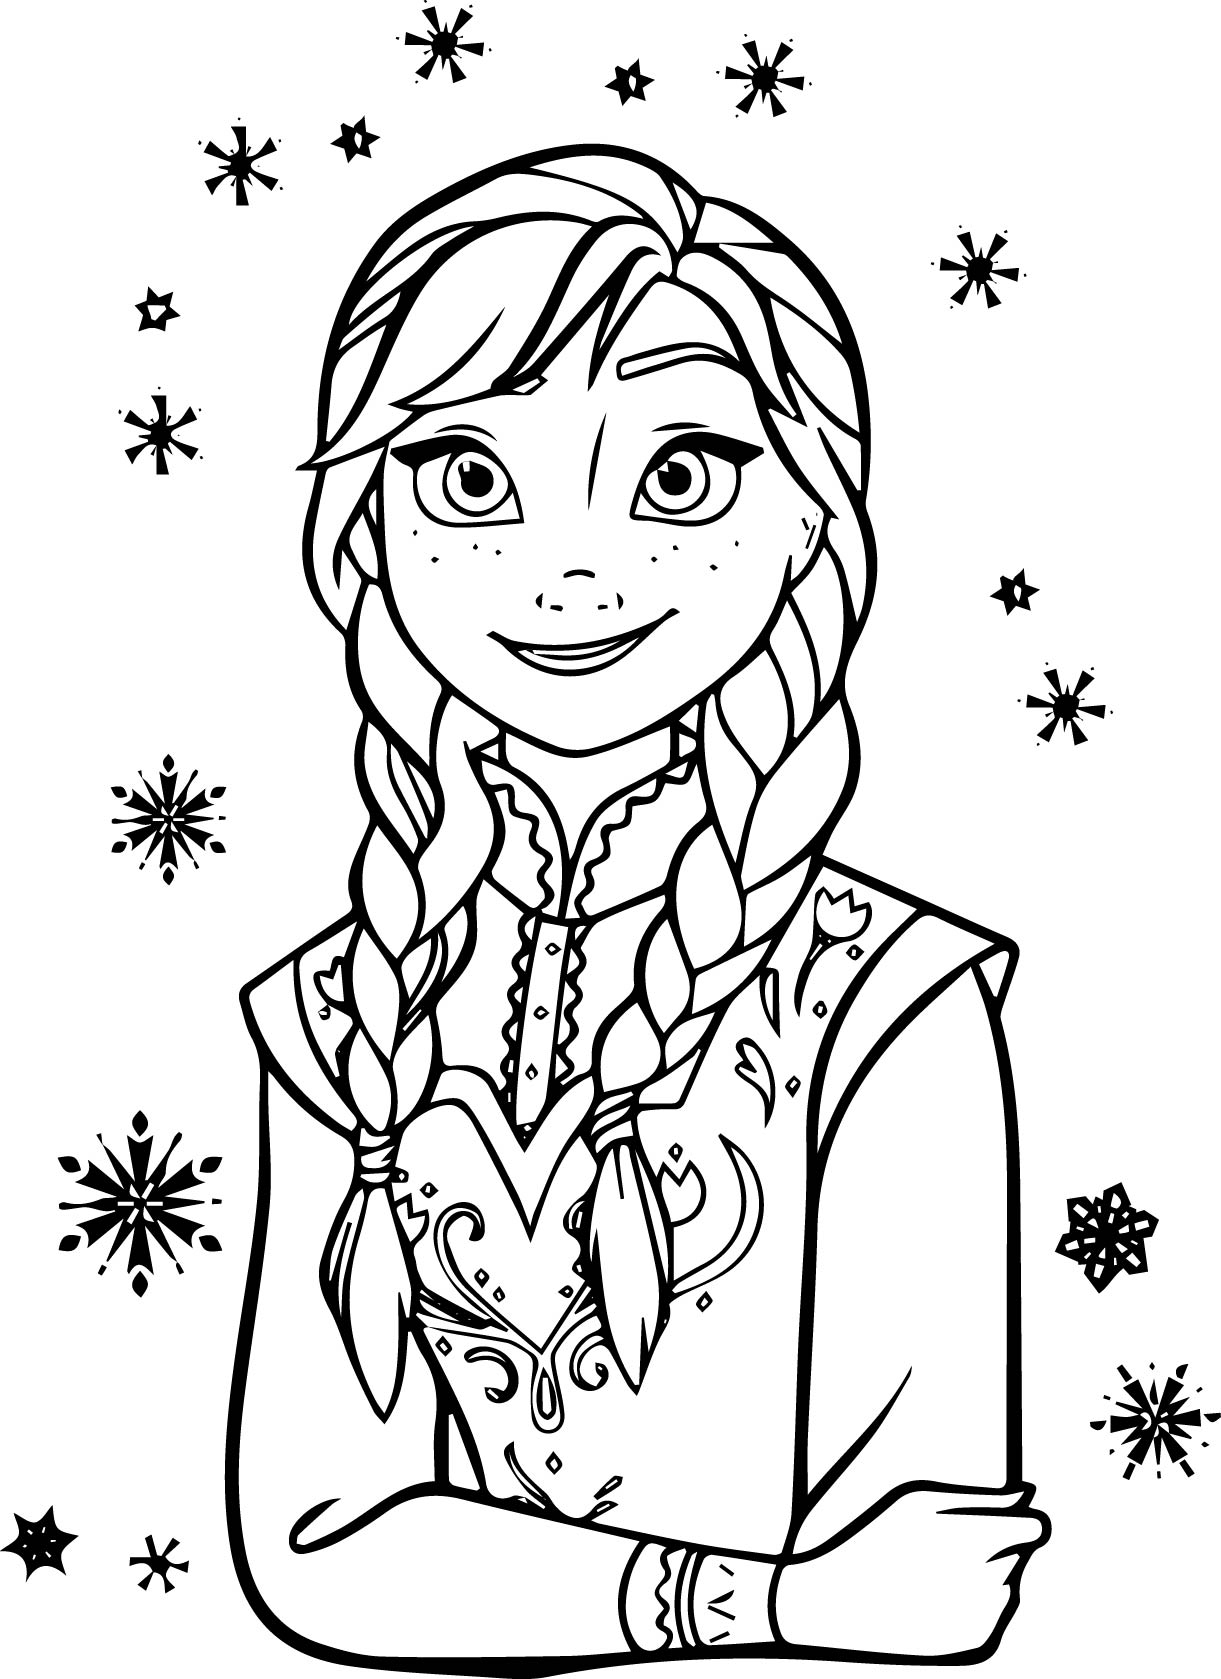 Frozen Coloring Pages Free Printables At Getdrawings